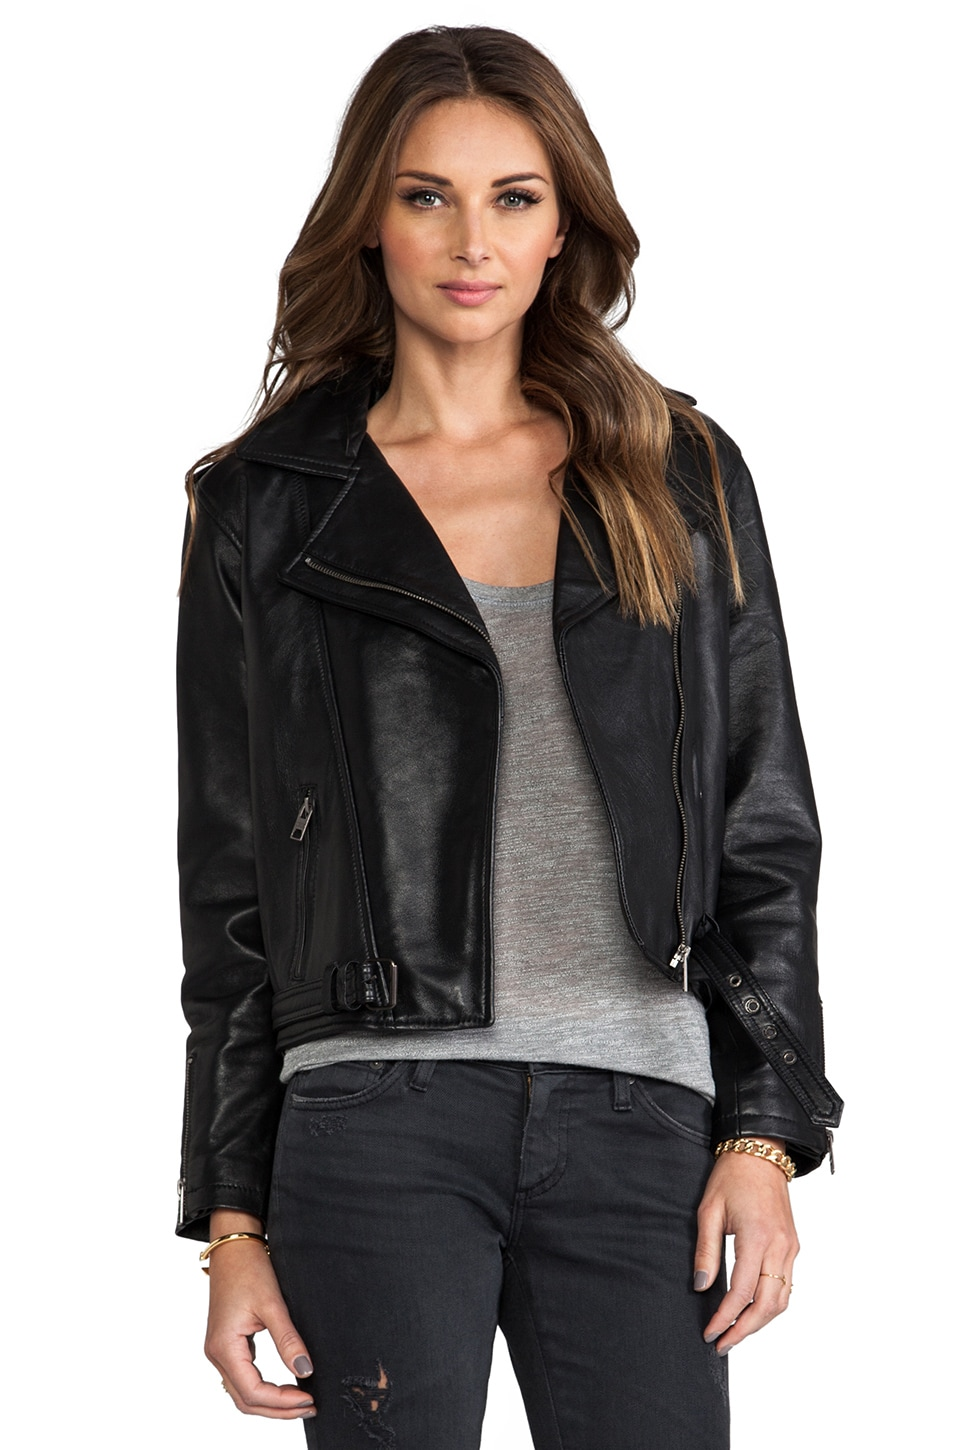 Viparo Eliza Classic Leather Biker Jacket in Black